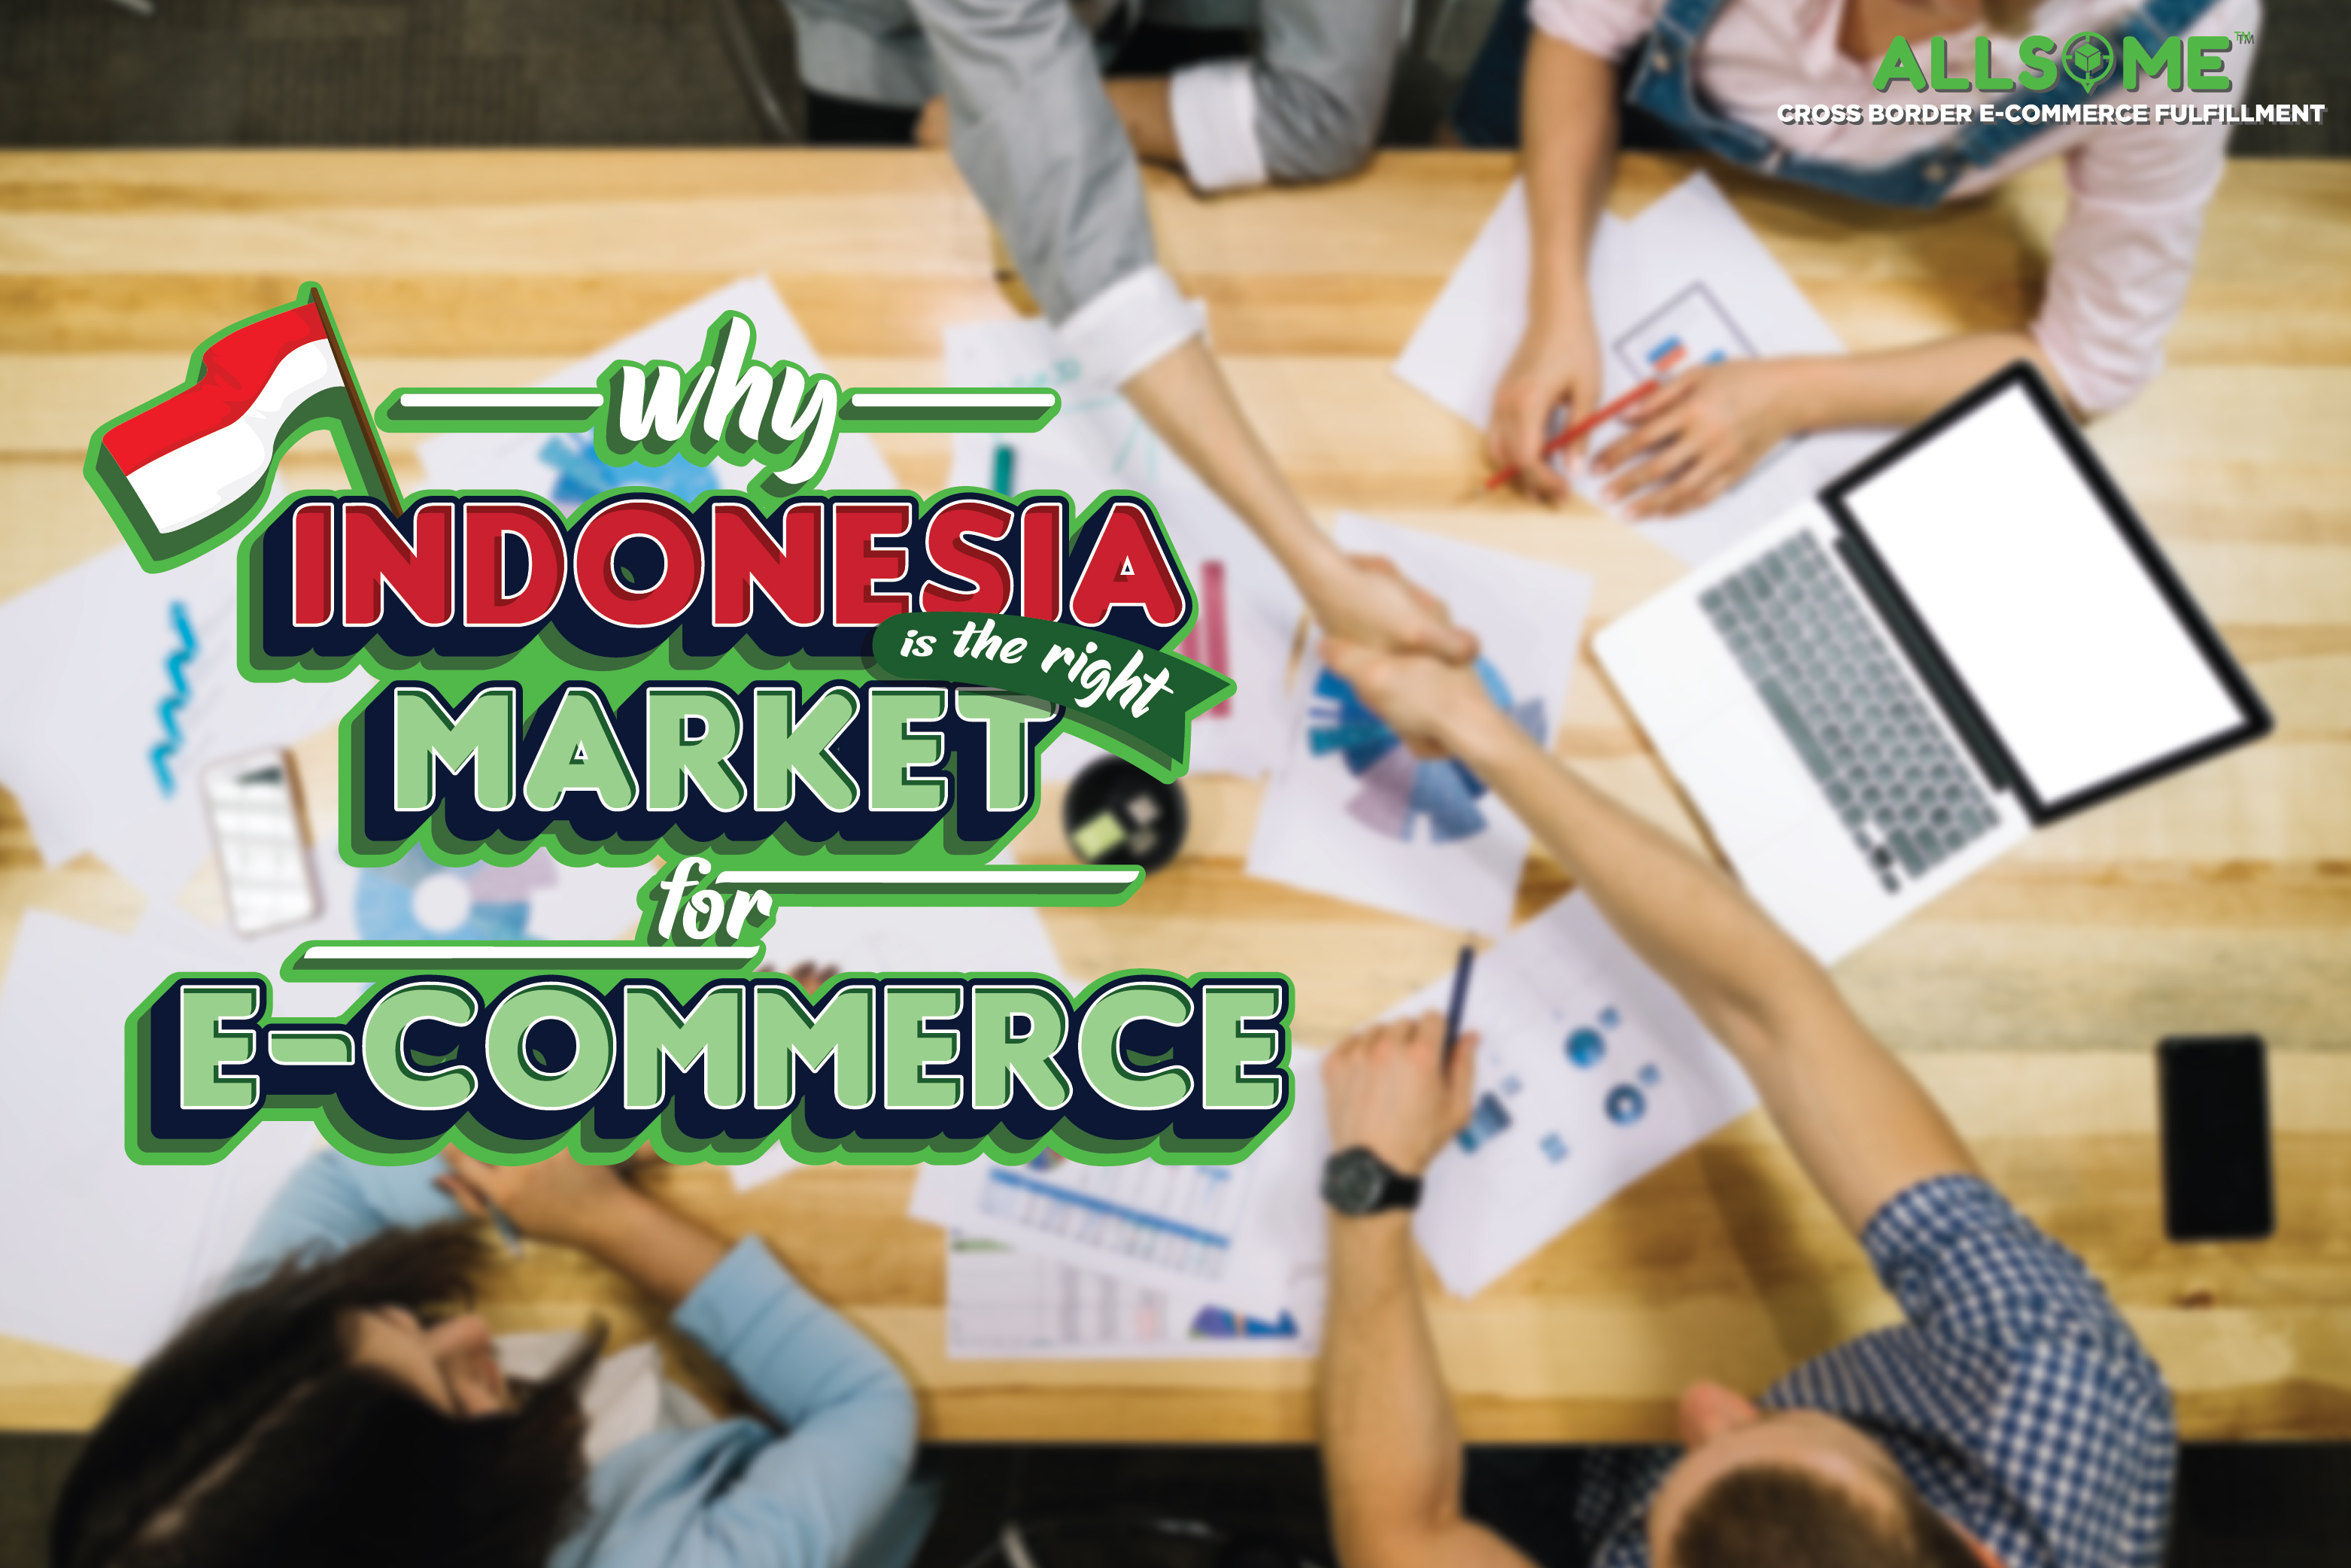 Why Indonesia is the Right Market for E-Commerce